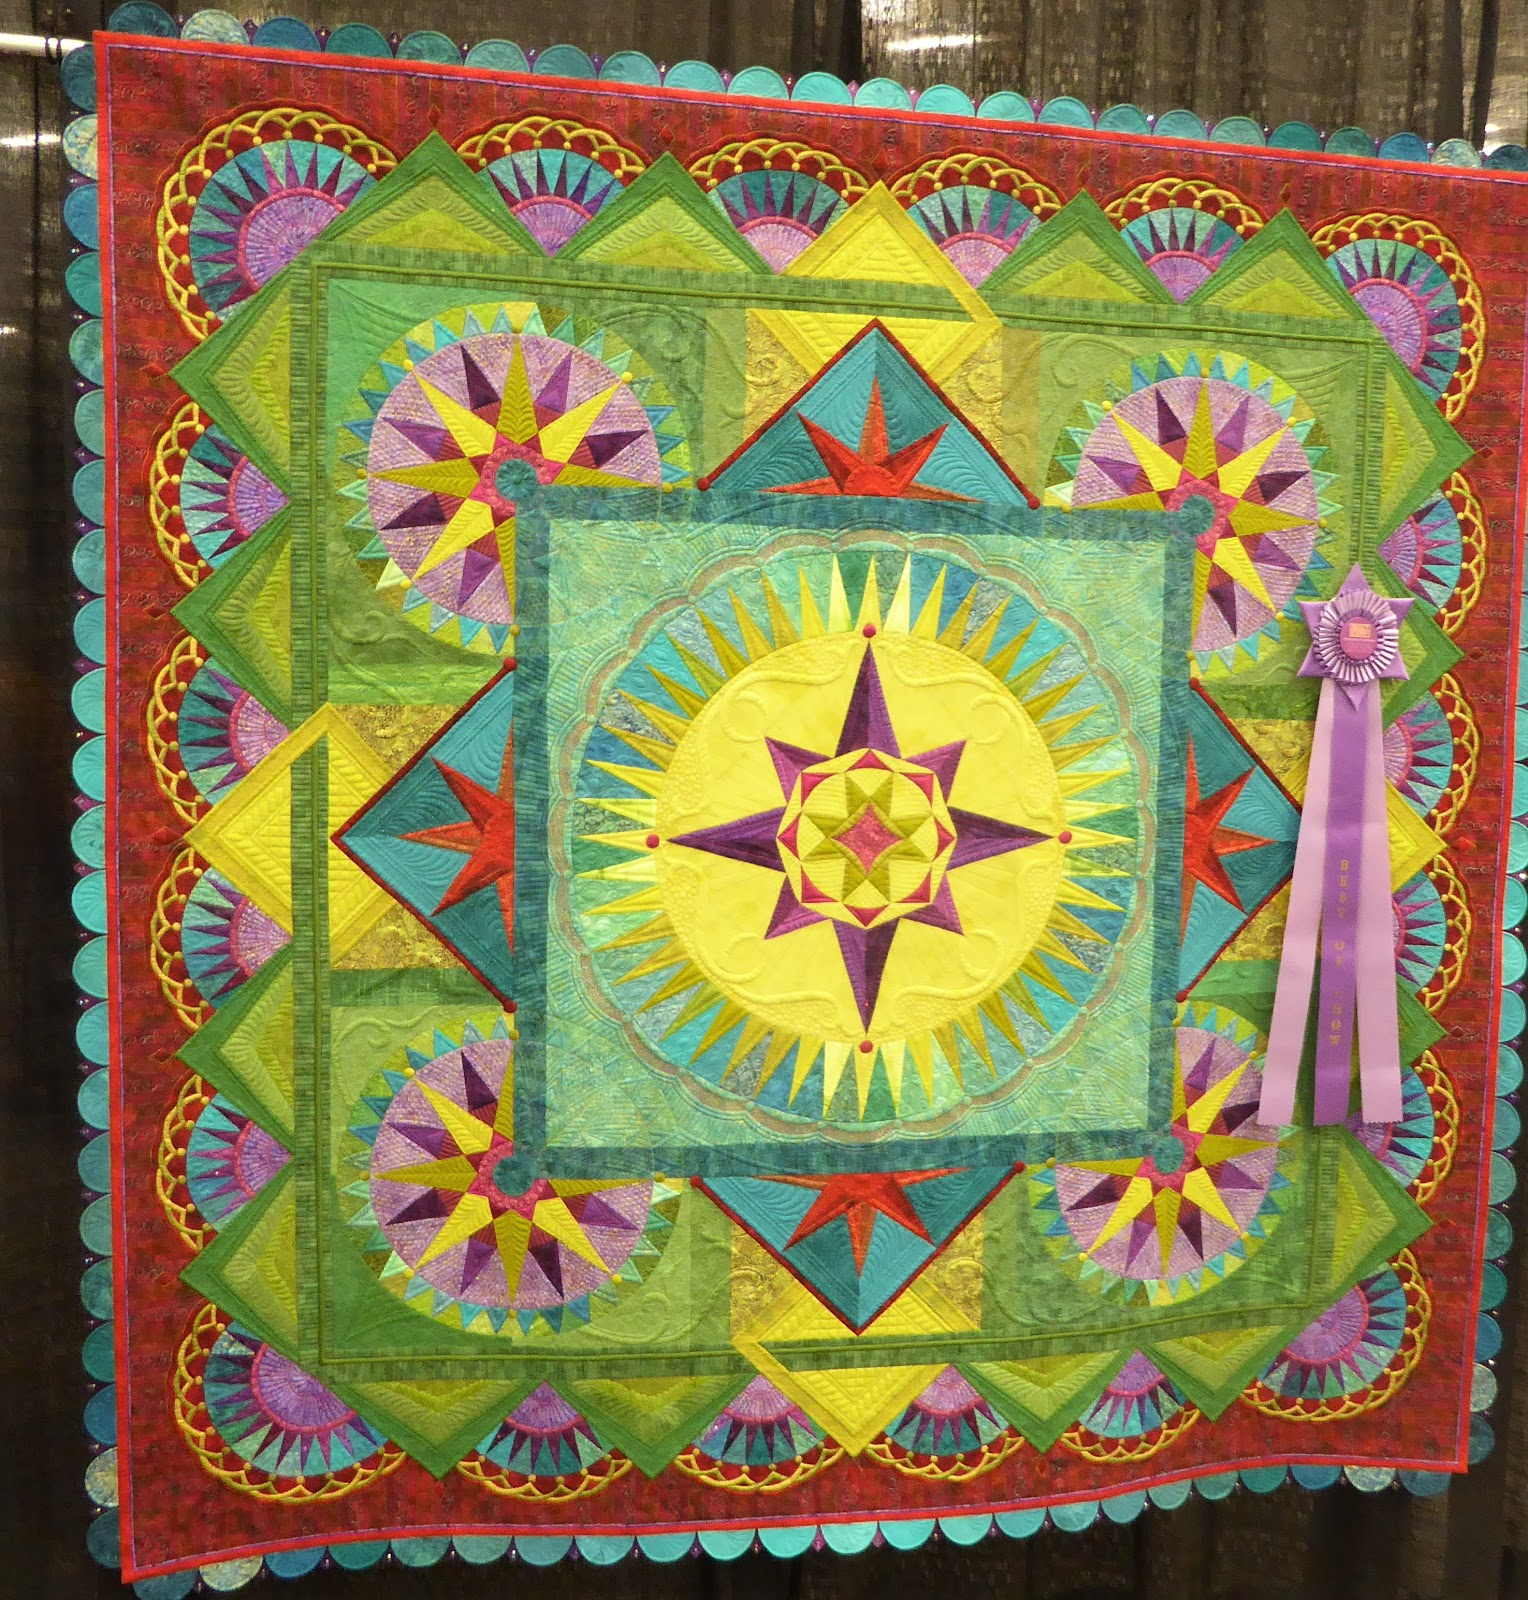 Rv Khronicles Of Kevelyn Madison Quilt Expo And Doctor Visits